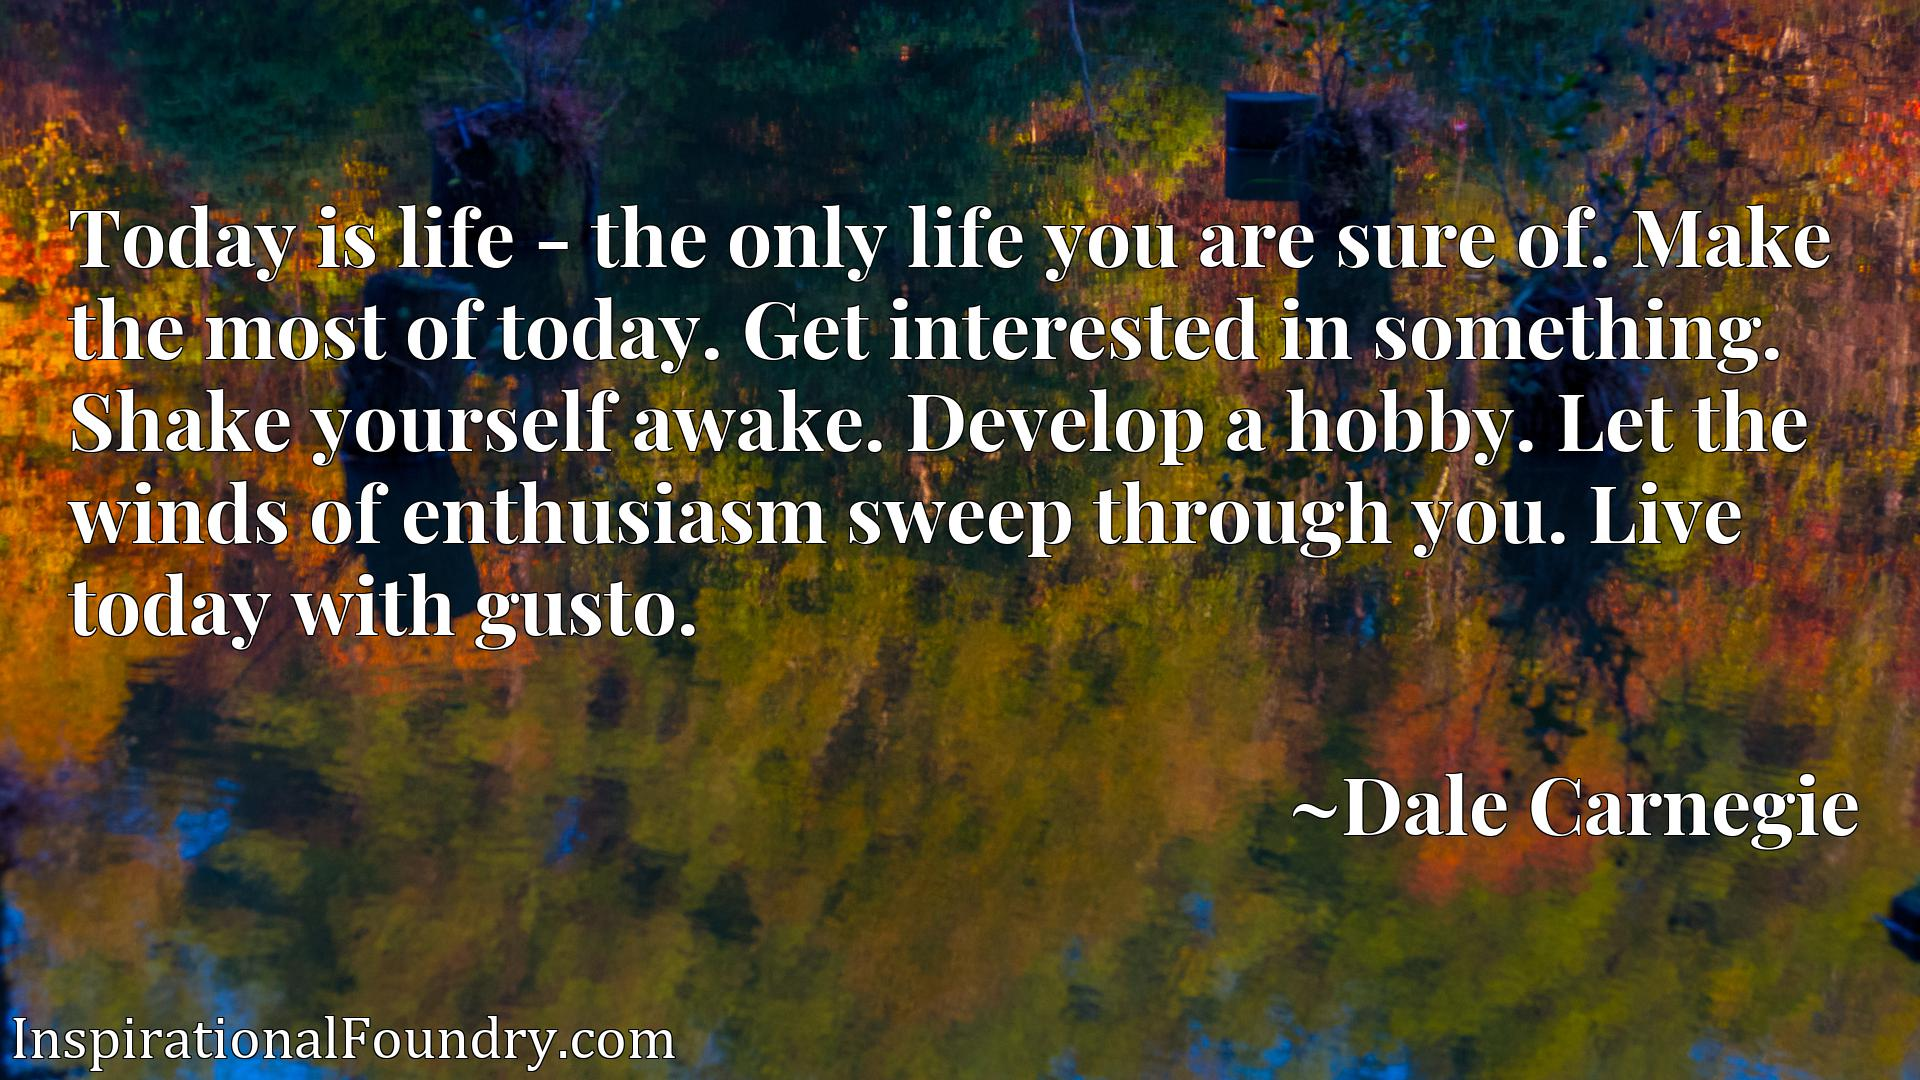 Quote Picture :Today is life - the only life you are sure of. Make the most of today. Get interested in something. Shake yourself awake. Develop a hobby. Let the winds of enthusiasm sweep through you. Live today with gusto.